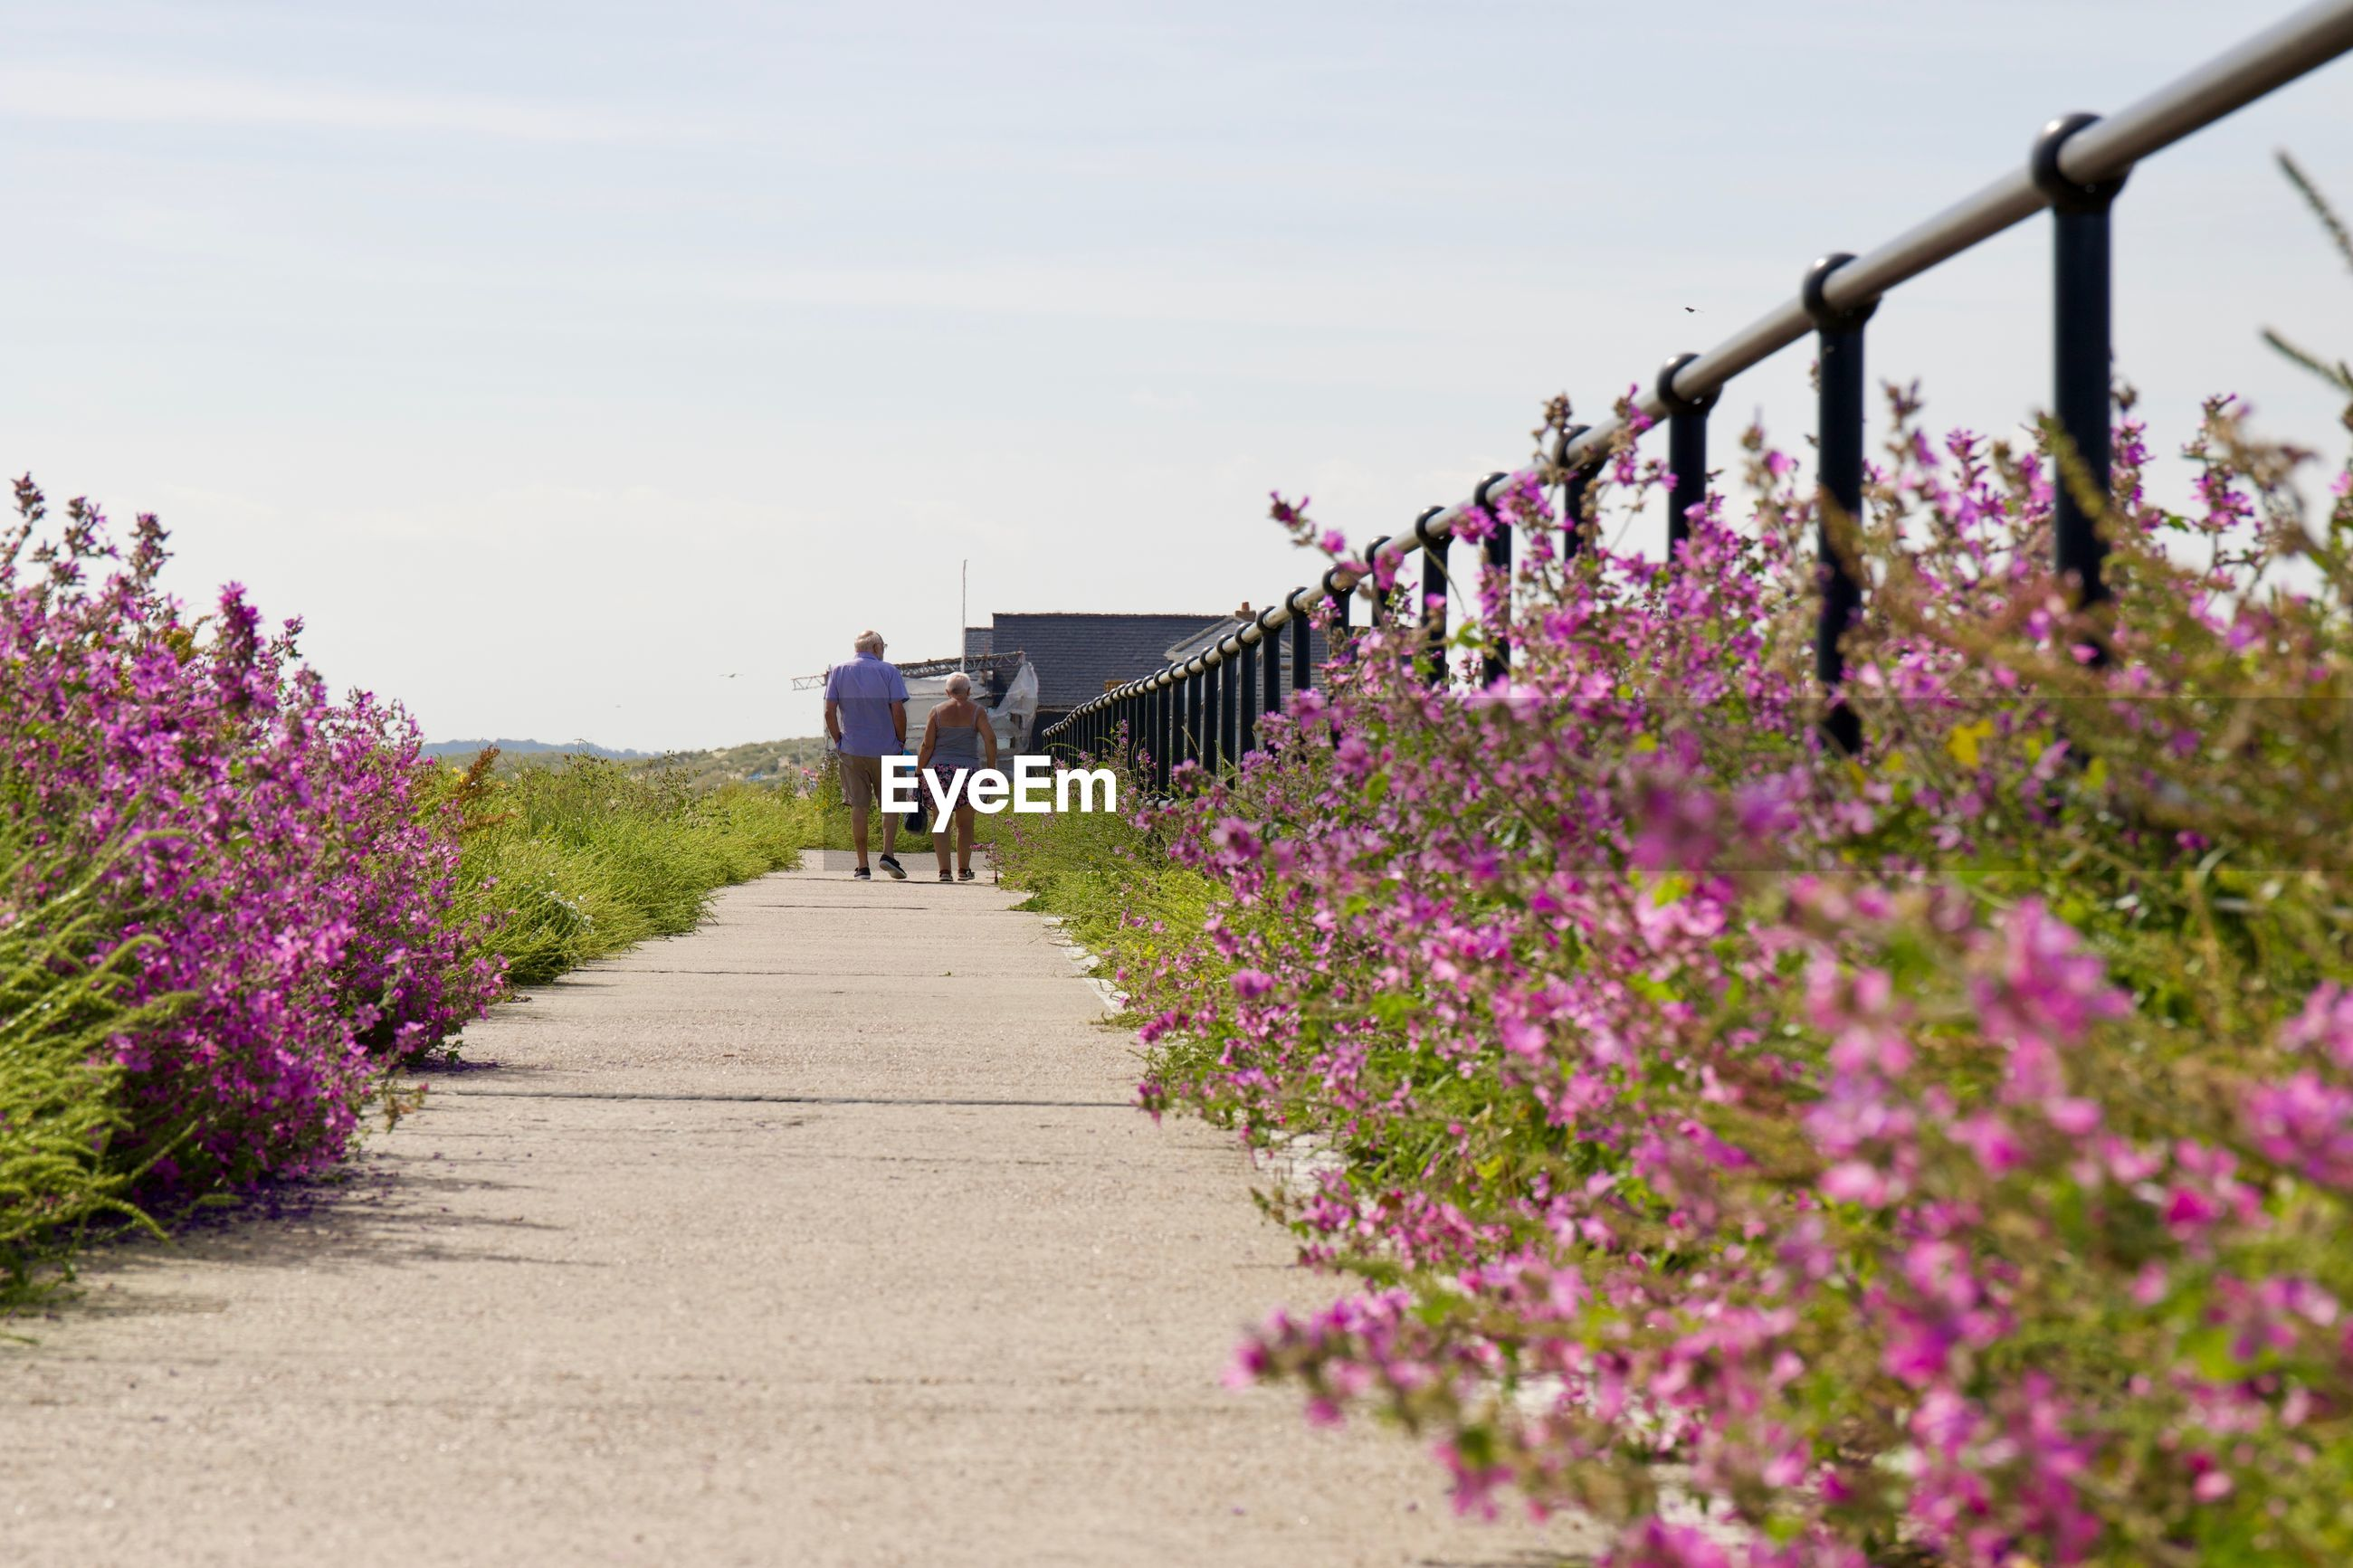 Rear view of senior man and woman walking on footpath by flowering plants against sky